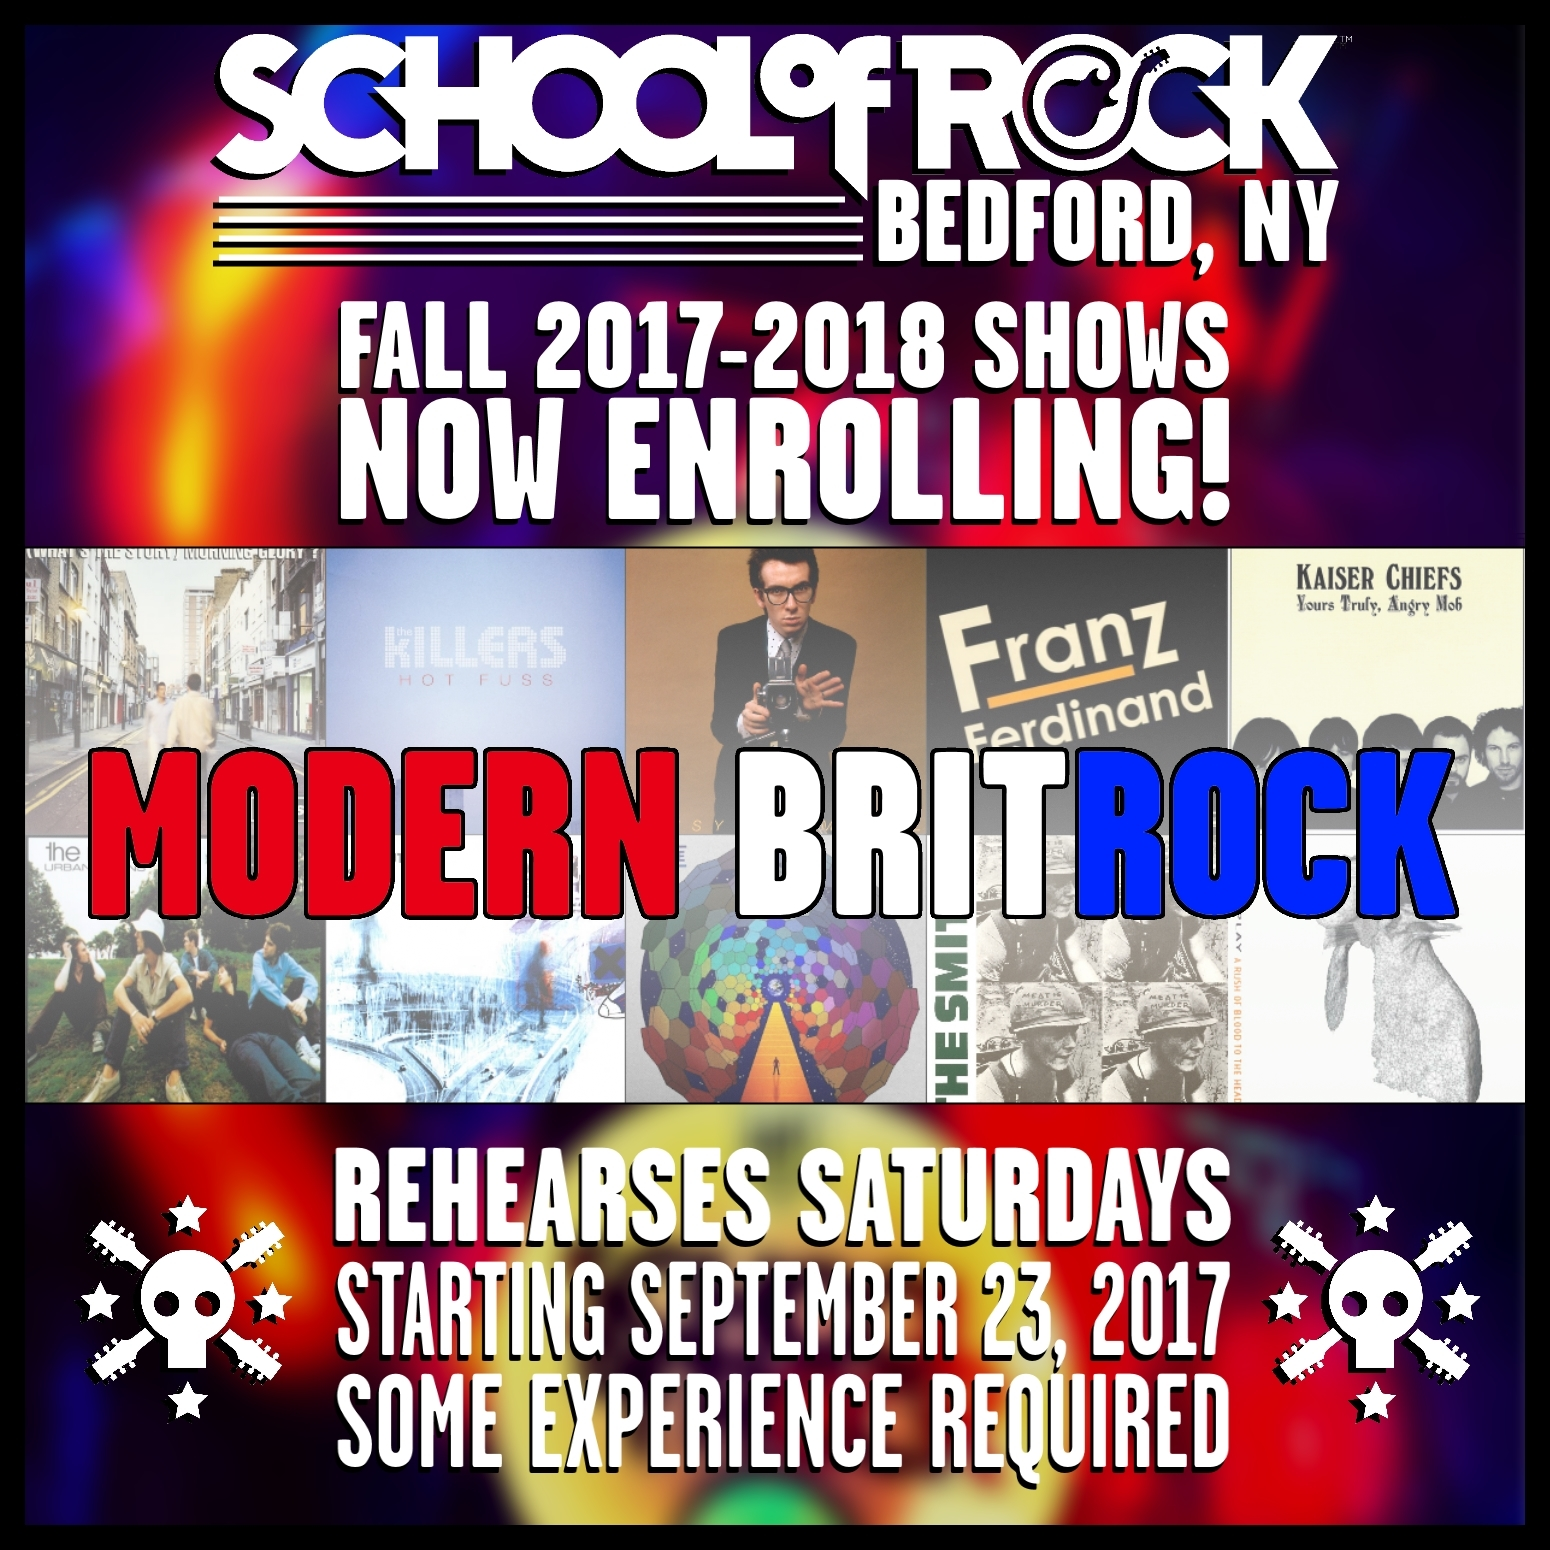 Image of FALL 2017-2018 SHOW #6: MODERN BRITROCK